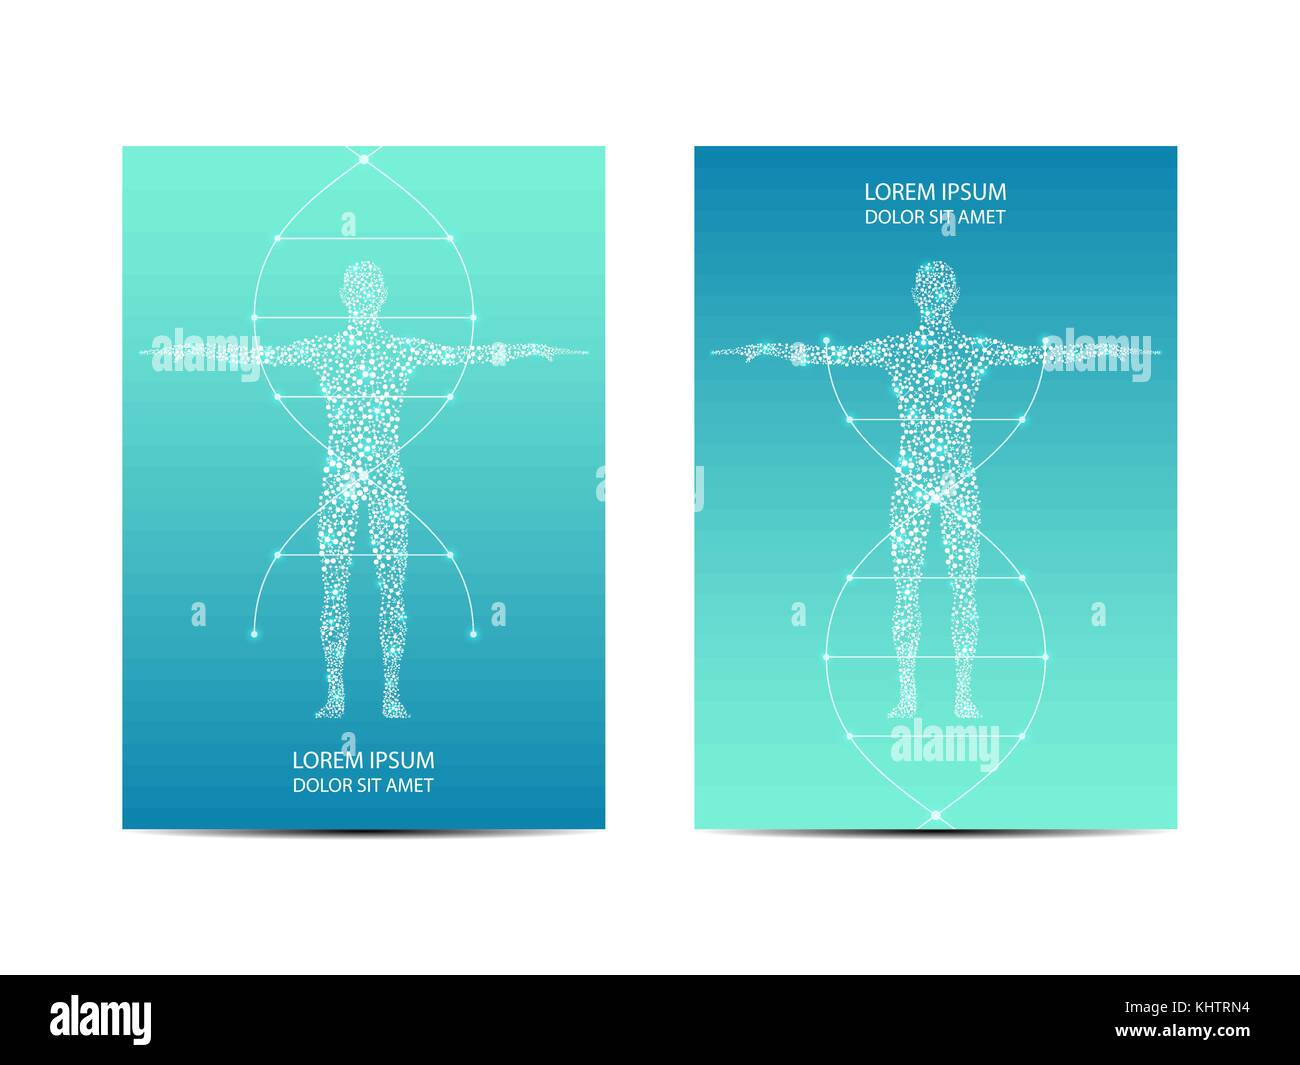 Cover or poster design with human body, scientific and technological concept, vector illustration. - Stock Image